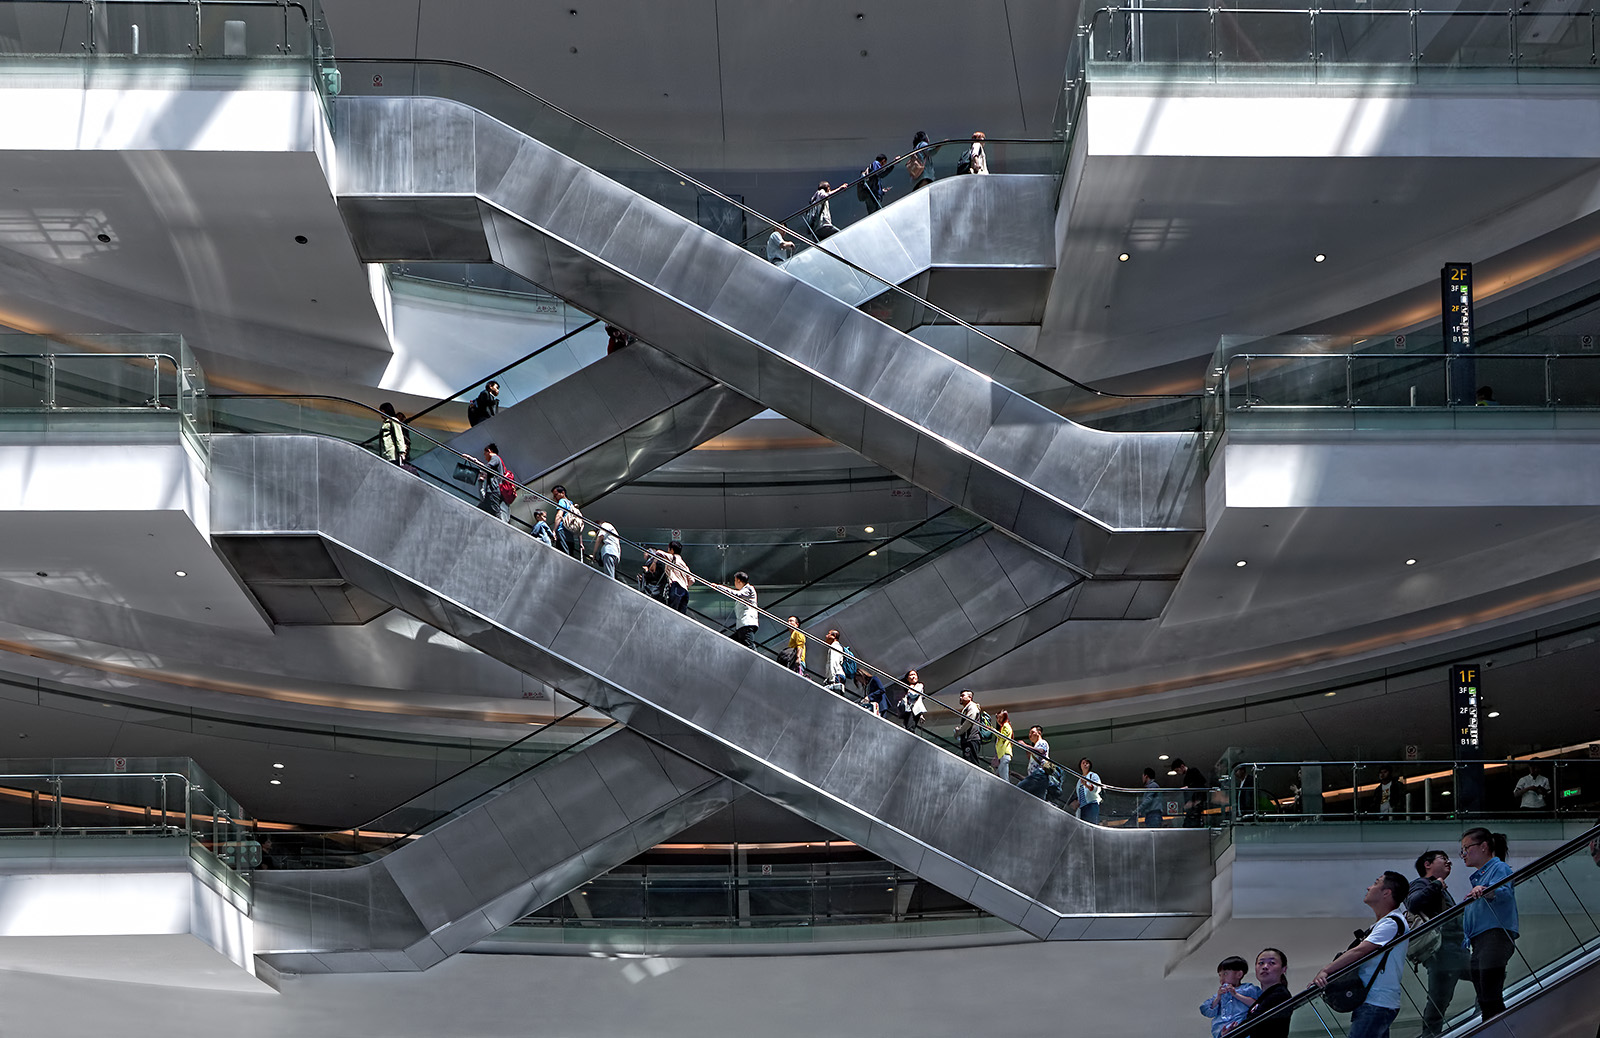 Architectural photography of the escalators at Hauqiao International Airport in Shanghai China. Paul Dingman is an architectural photographer based in China. He specializes in the photography of airports and transportation and large scale projects. He works throughout China and Asia.